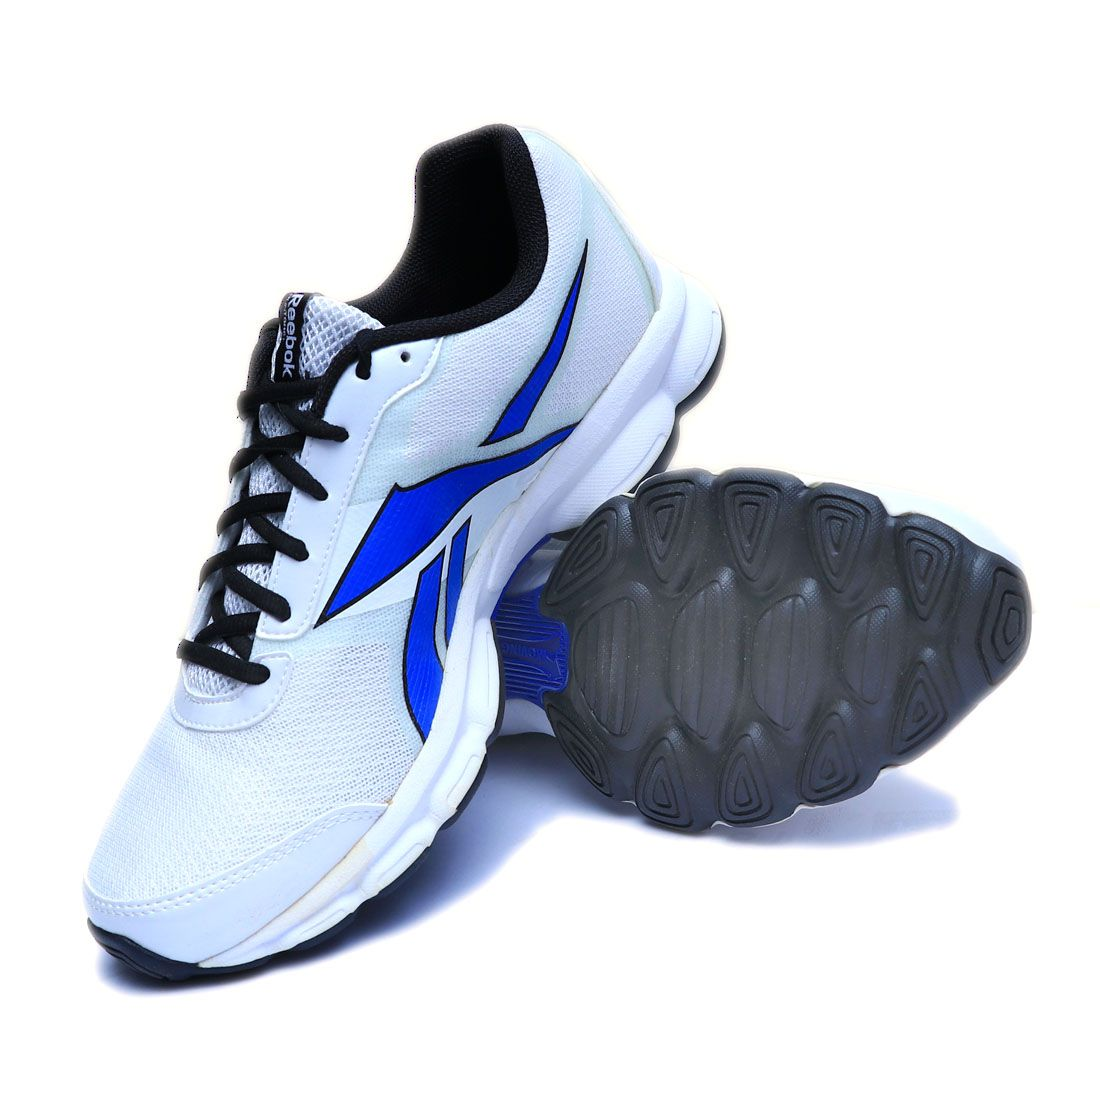 2cadff83b8fc Reebok White Training Shoes - Buy Reebok White Training Shoes Online at  Best Prices in India on Snapdeal